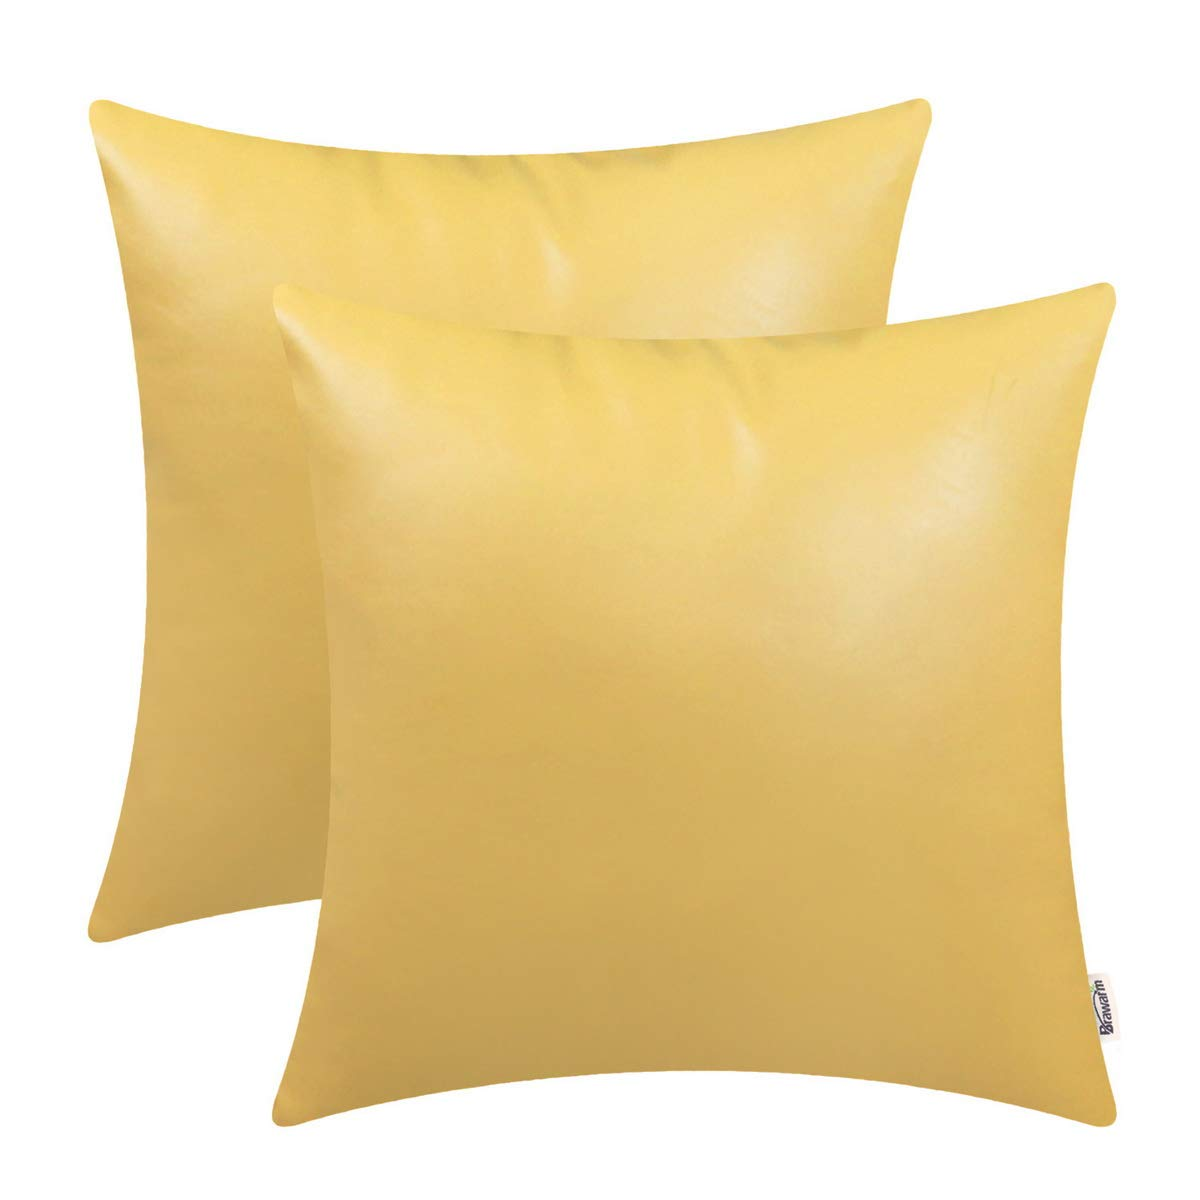 BRAWARM Pack of 2 Cozy Throw Pillow Covers Cases for Couch Sofa Home Decoration Solid Dyed Soft Faux Leather Both Sides 24 X 24 Inches Primrose Yellow